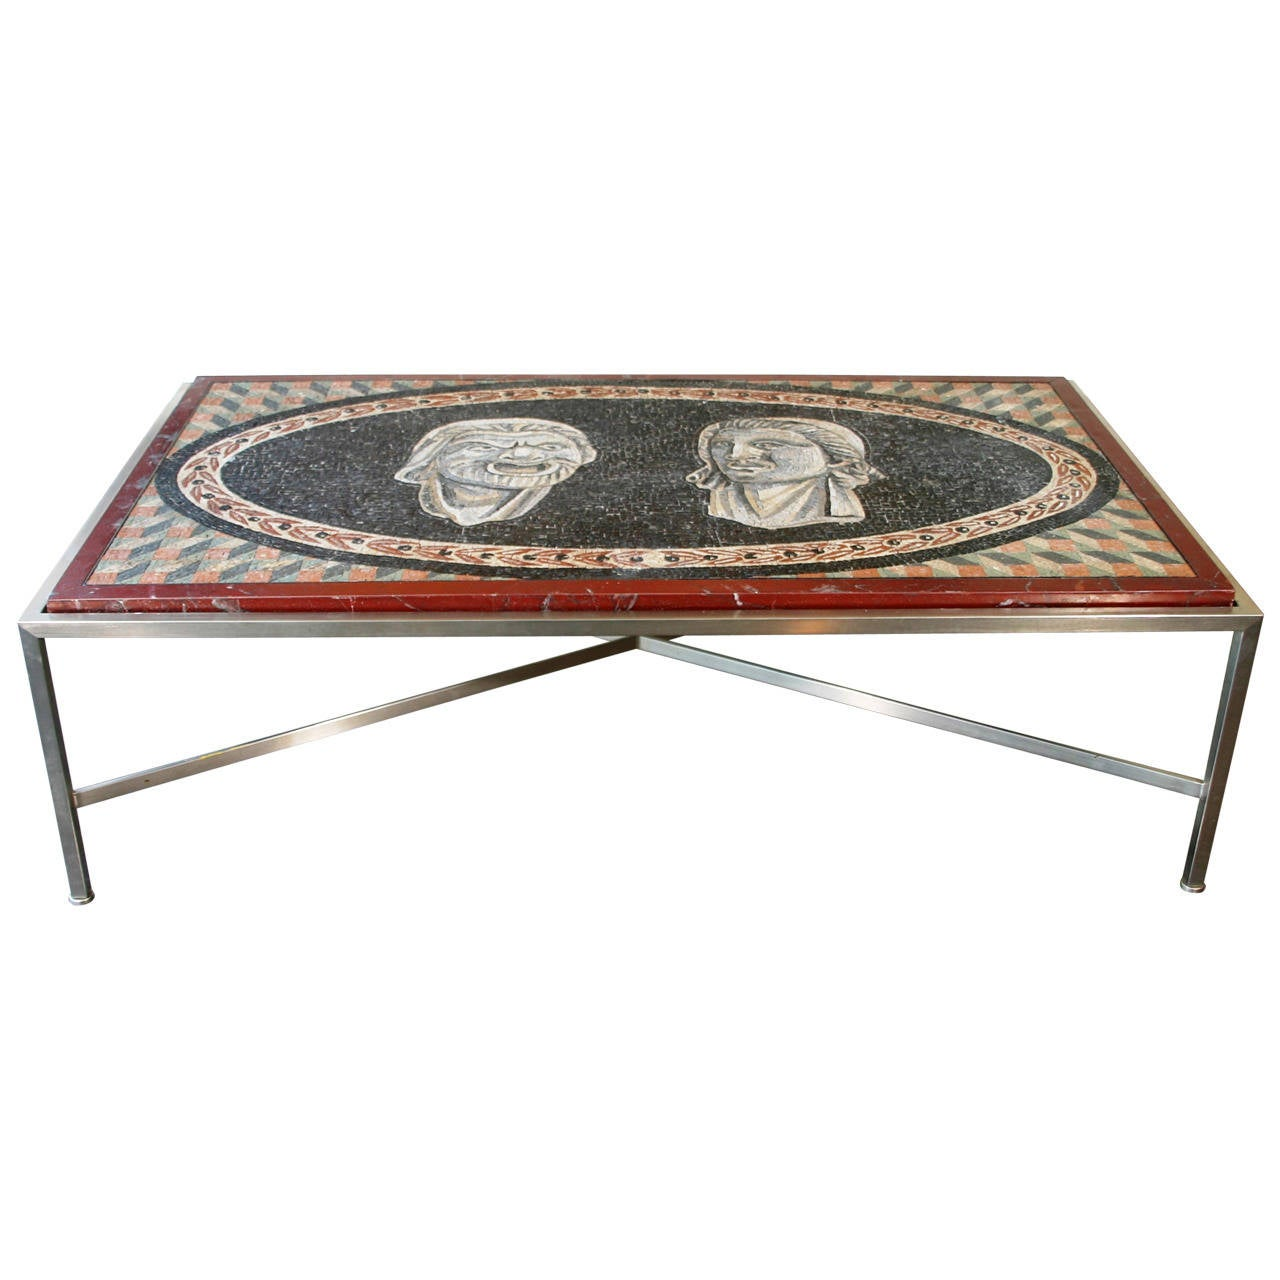 Mosaic Panel Coffee Table For Sale At 1stdibs